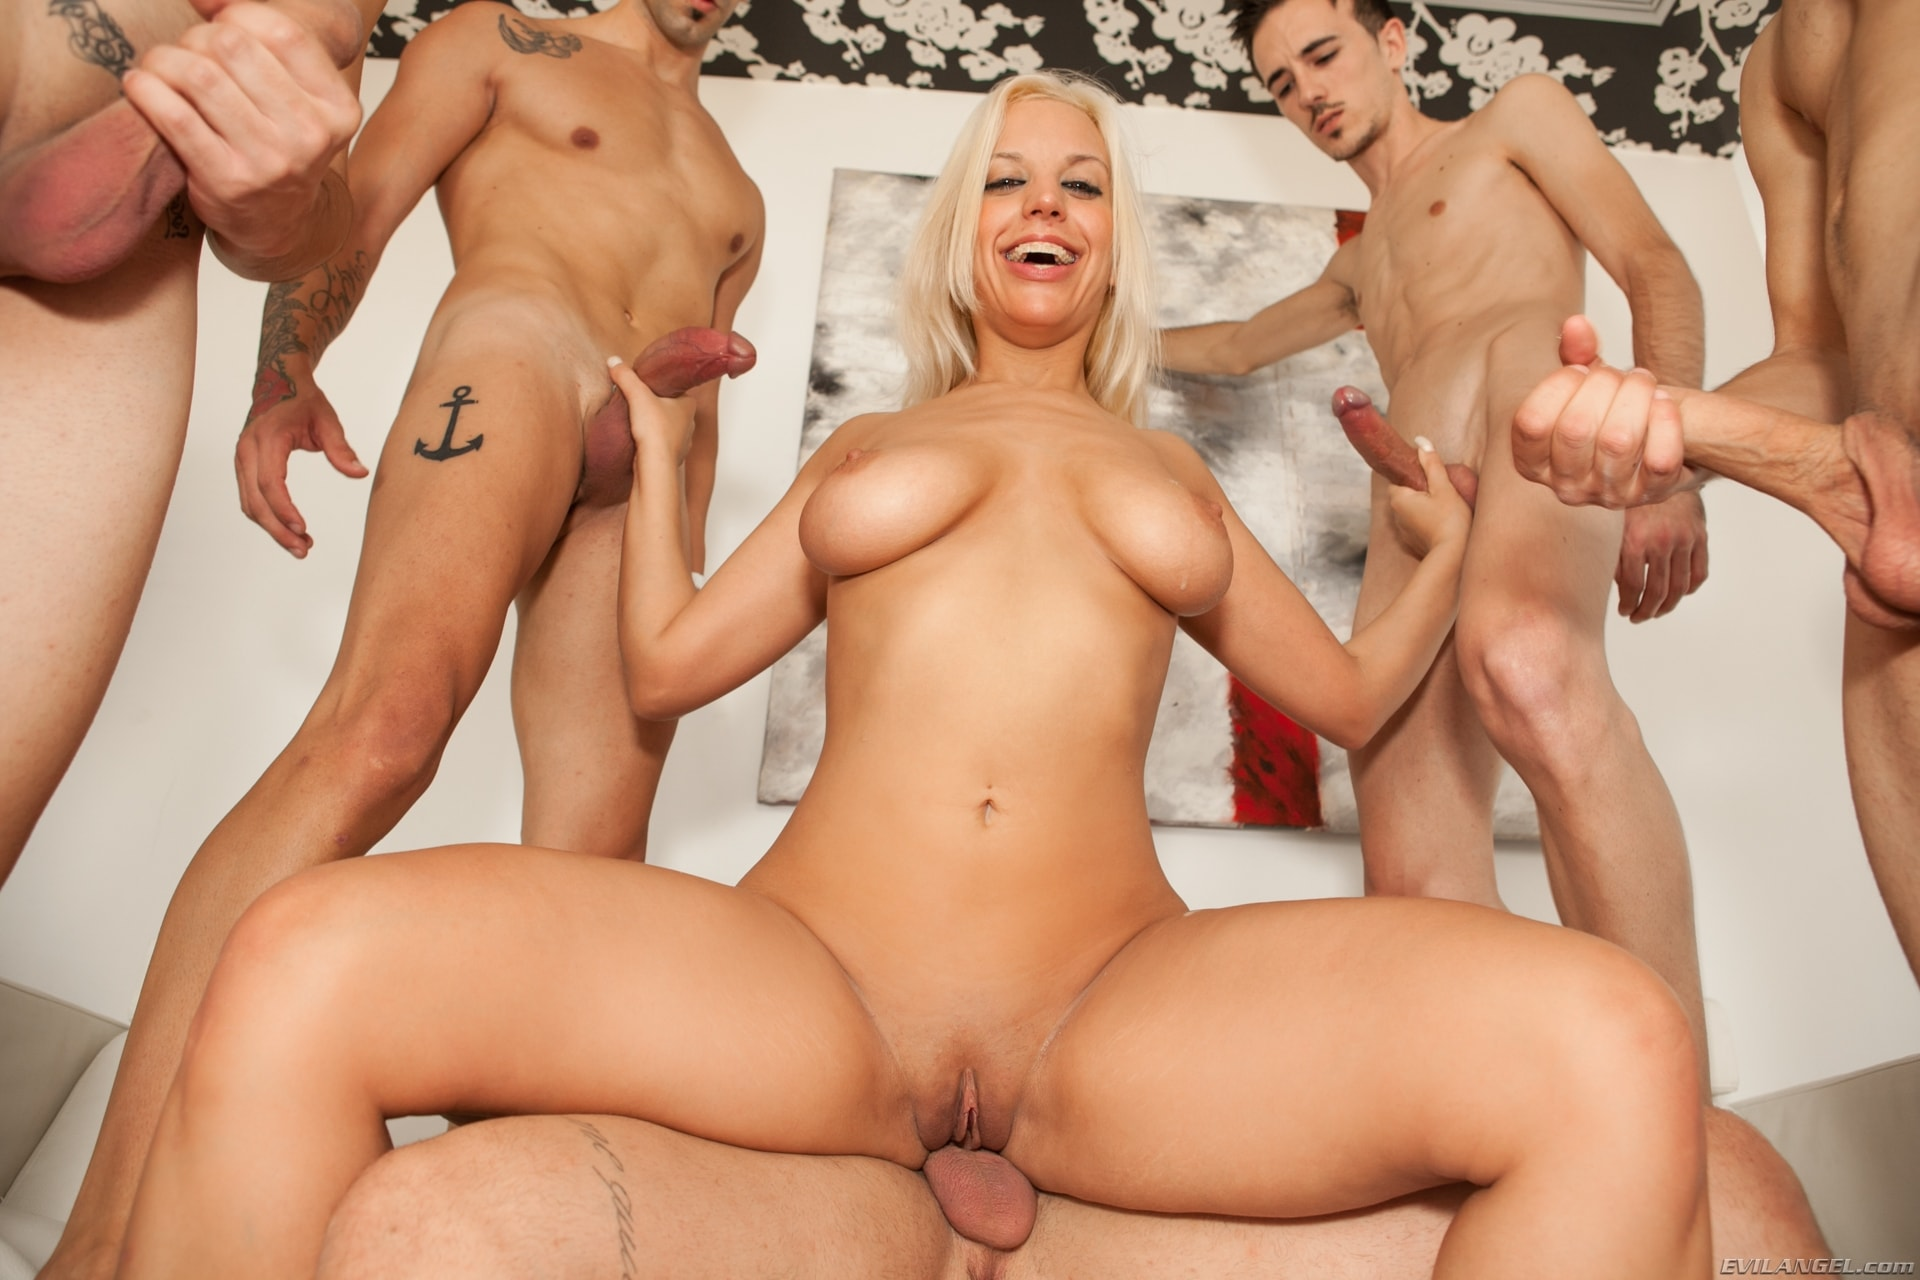 Evil Angel 'Nacho's Fucking Amateurs 02: Gangbangs' starring Blondie Fesser (Photo 7)